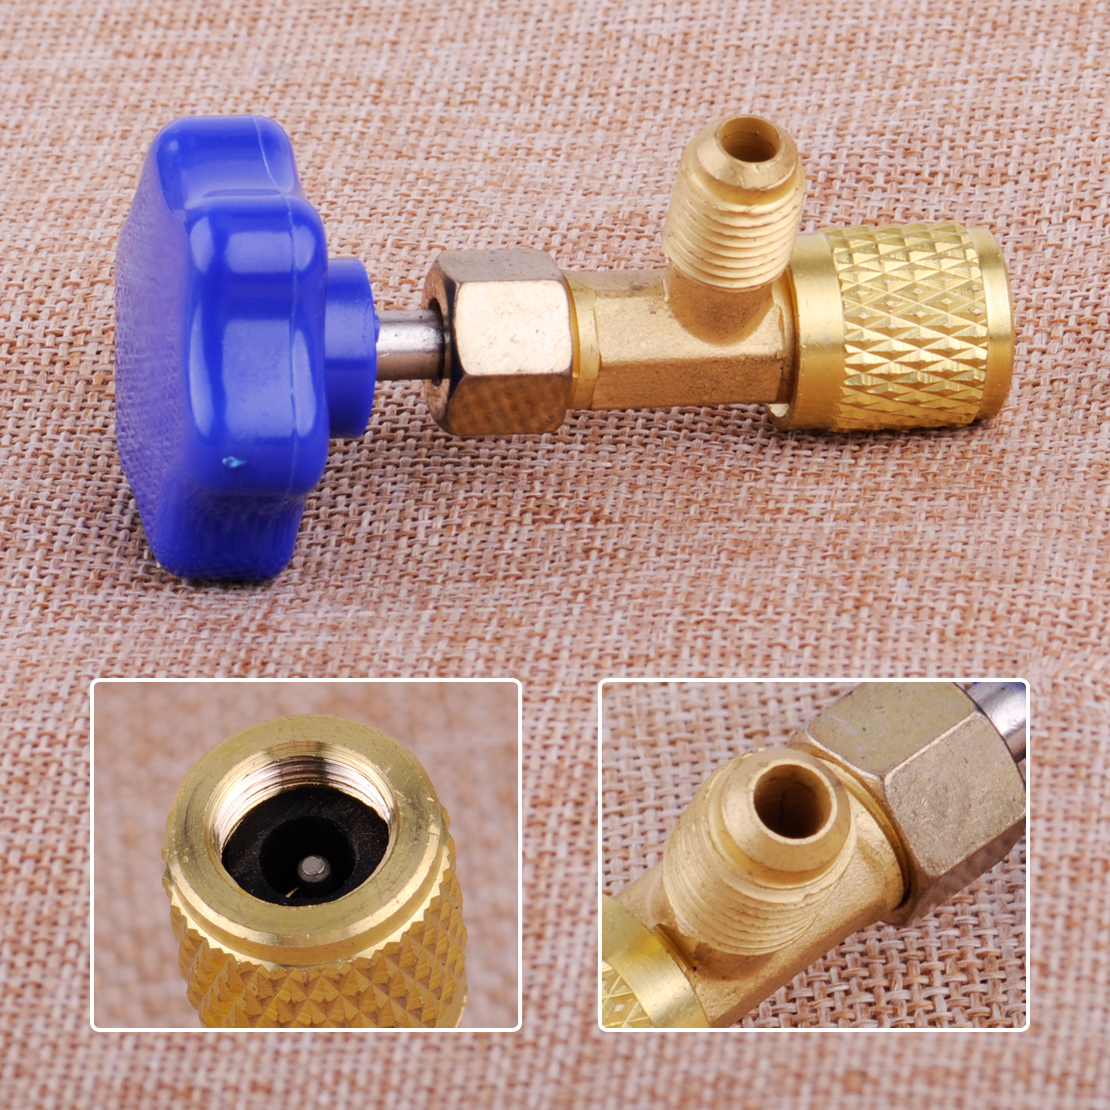 1//4 SAE Car Can Tap Valve Refrigerant Bottle Opener Fit For R22 R134a R410A Gas